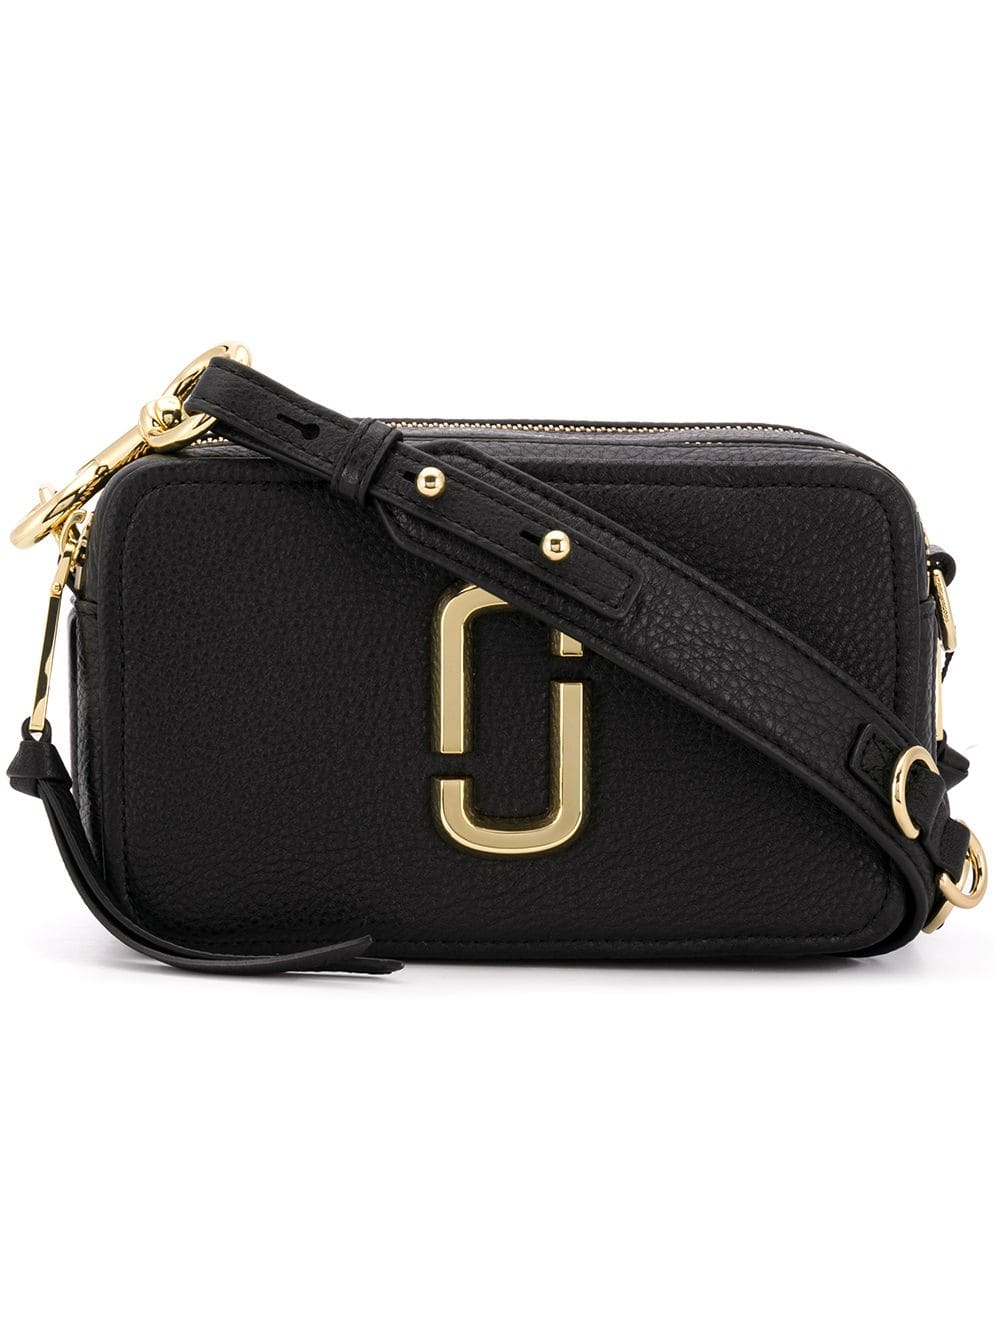 MARC JACOBS WOMEN BAG M0014591